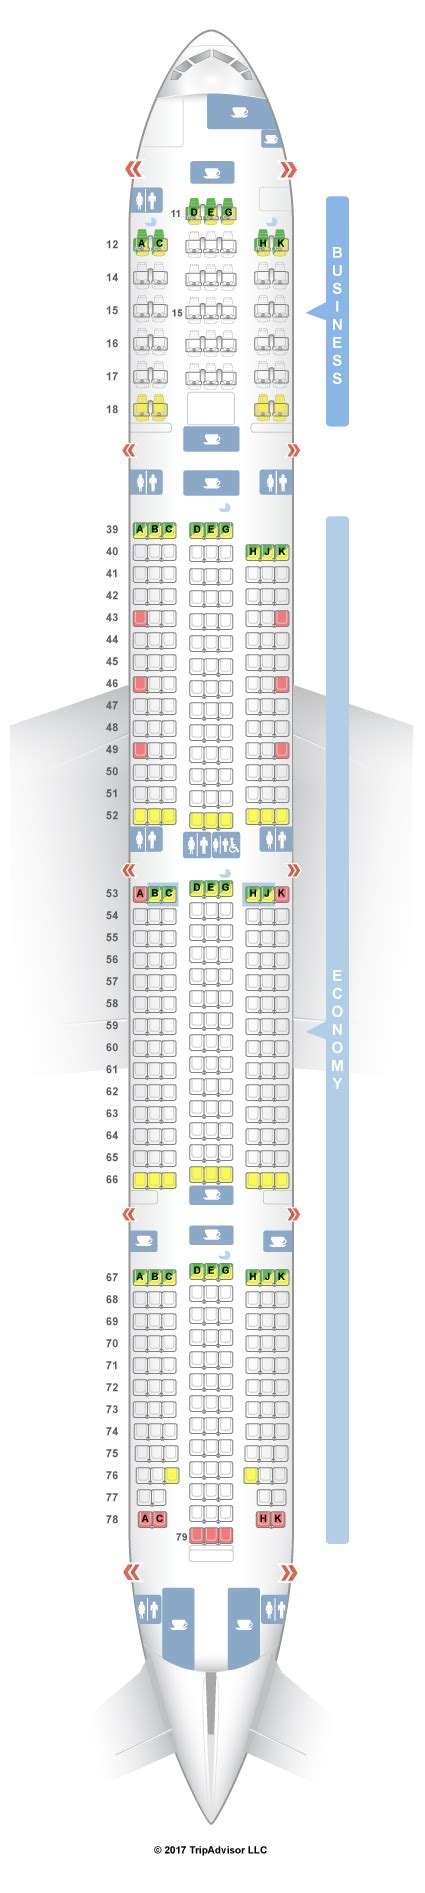 cathay pacific seat map seatguru seat map cathay pacific boeing 777 300 73z new